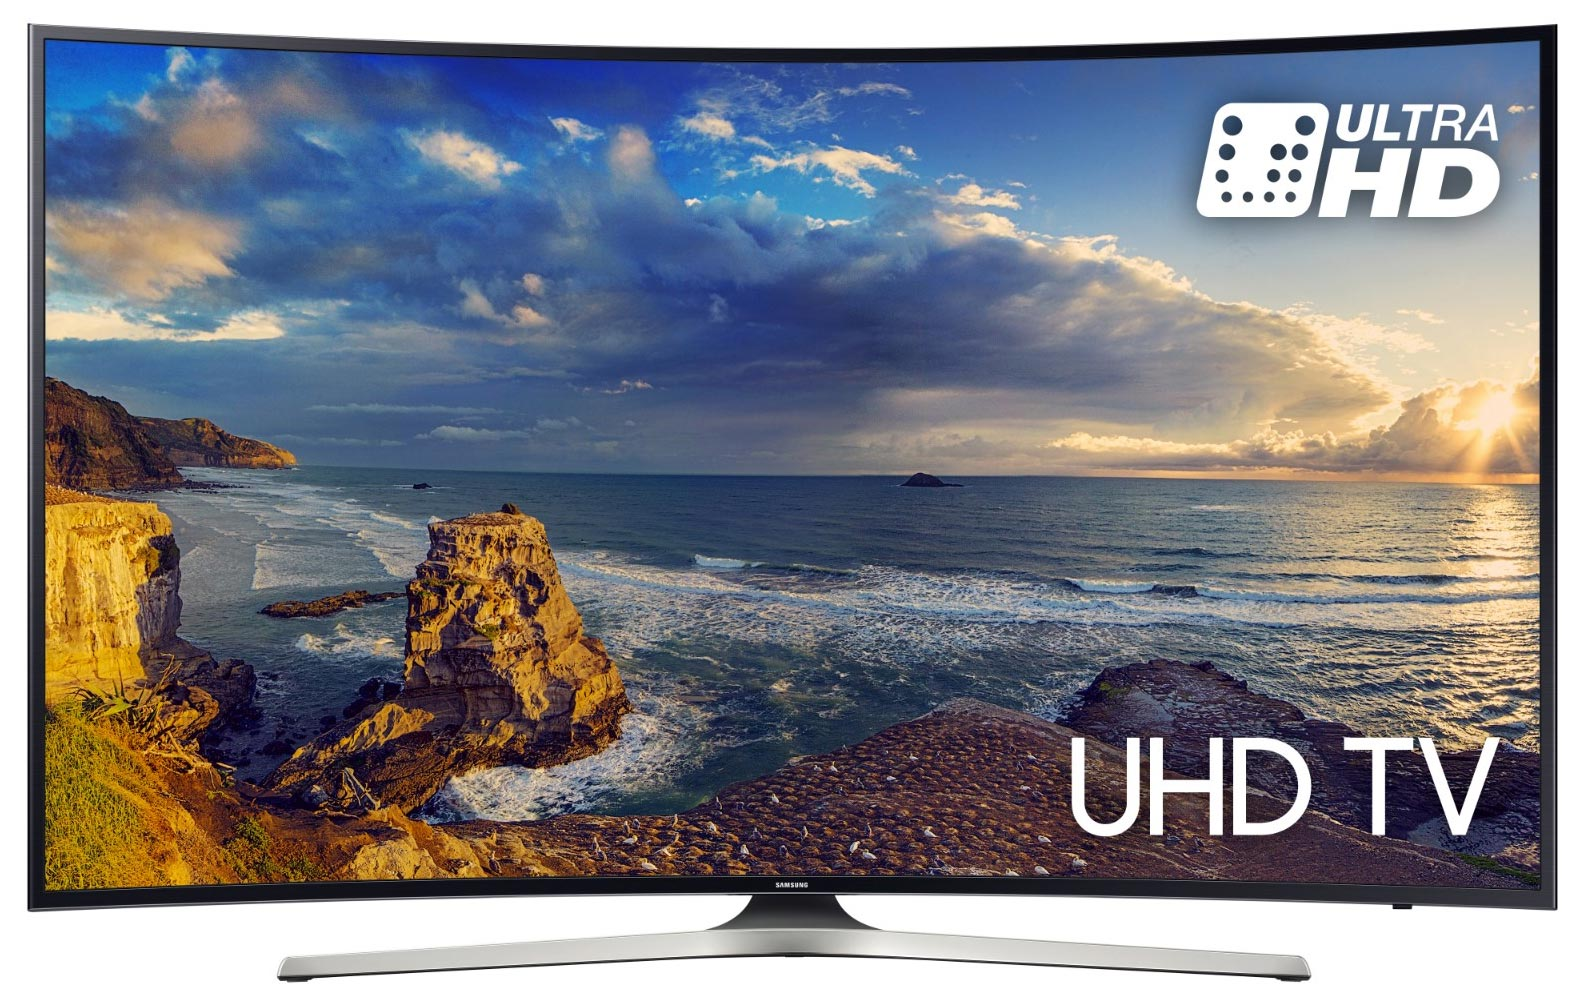 Samsung 2017 Tv Line Up Full Overview With Prices Flatpanelshd # Table Basse Et Table De Television